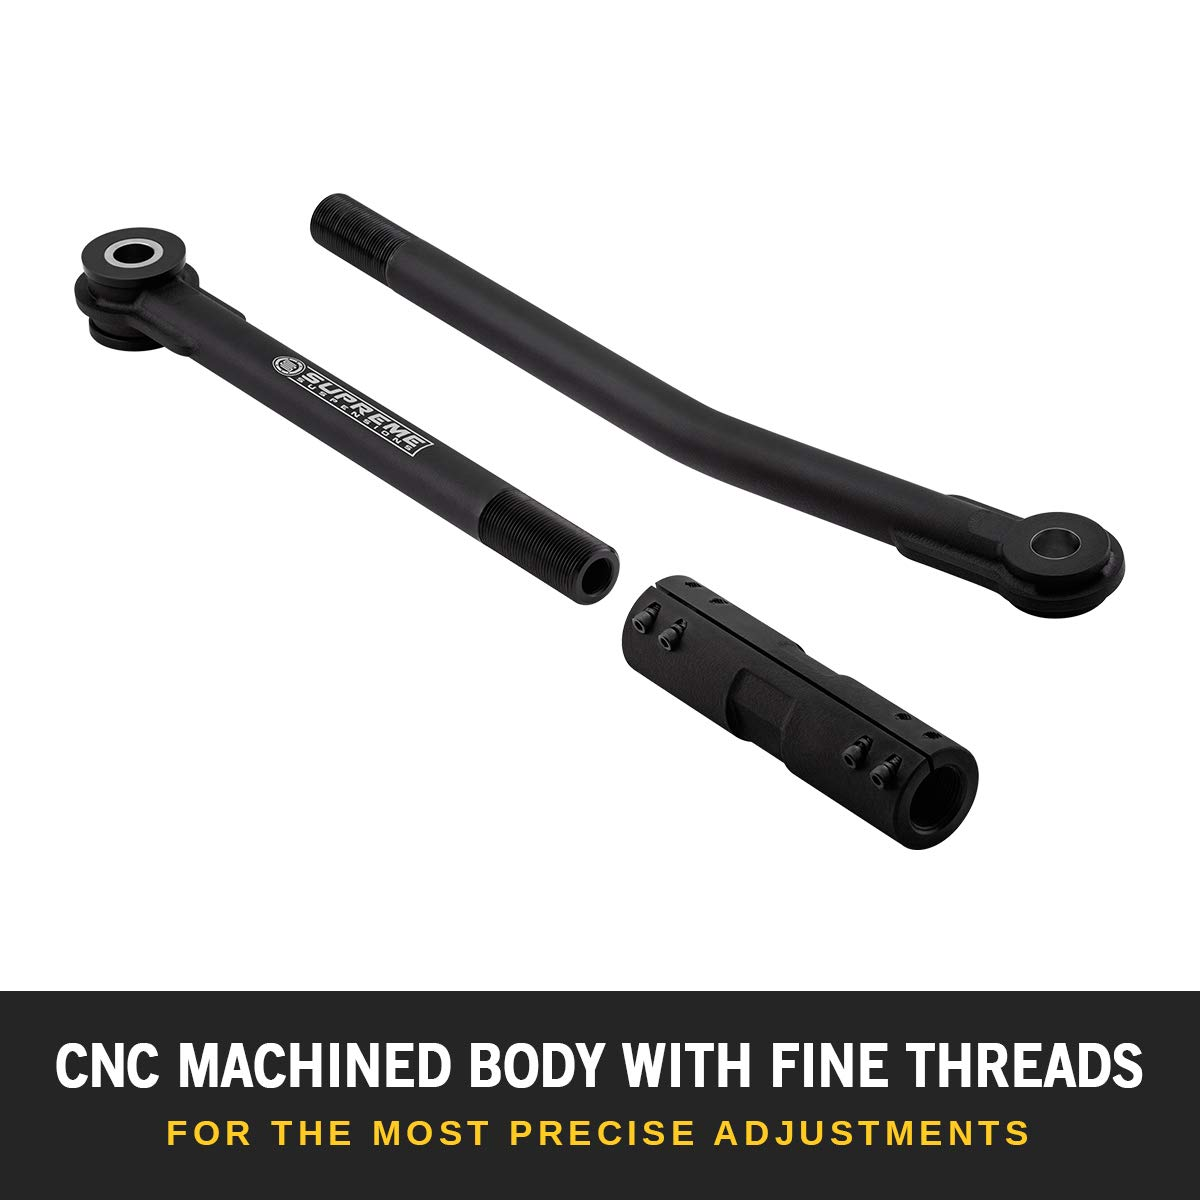 F-350 Super Duty Cold Rolled Steel 0.25 Wall Tubing TrackBar Adjustable Track Bar for 2005-2016 Ford F-250 Supreme Suspensions For vehicles with 0-8 of lift